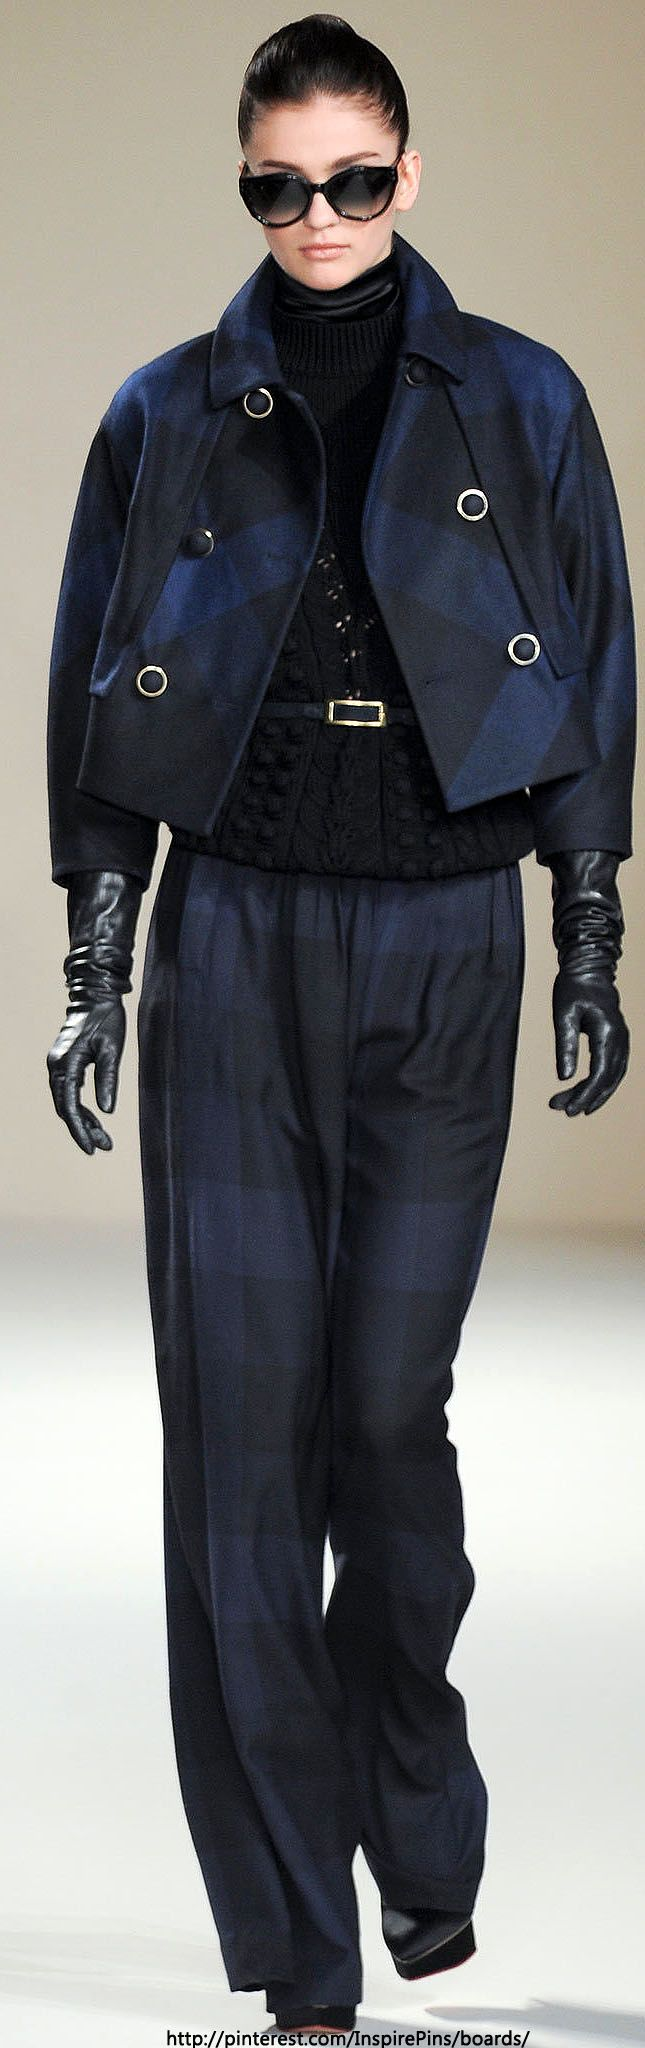 Nice styling and color combination - and again the long leather gloves add so much